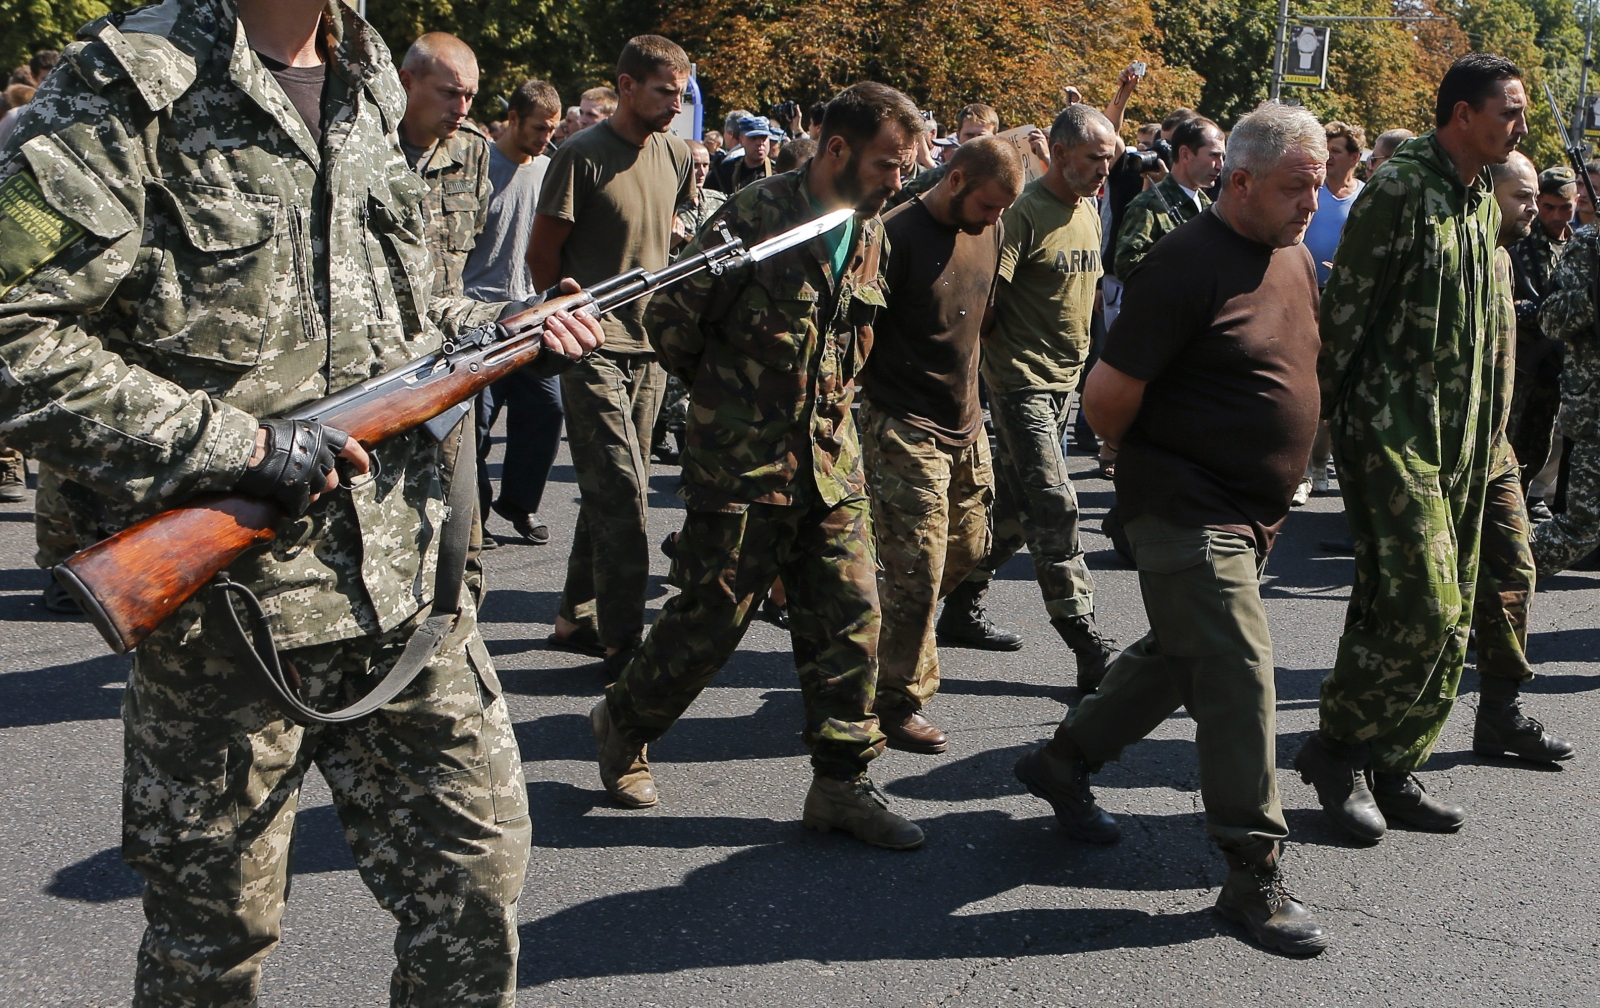 Captured Ukrainian soldiers are marched through Donetsk by pro-Russian rebels. (Reuters Maxim Shemetov)